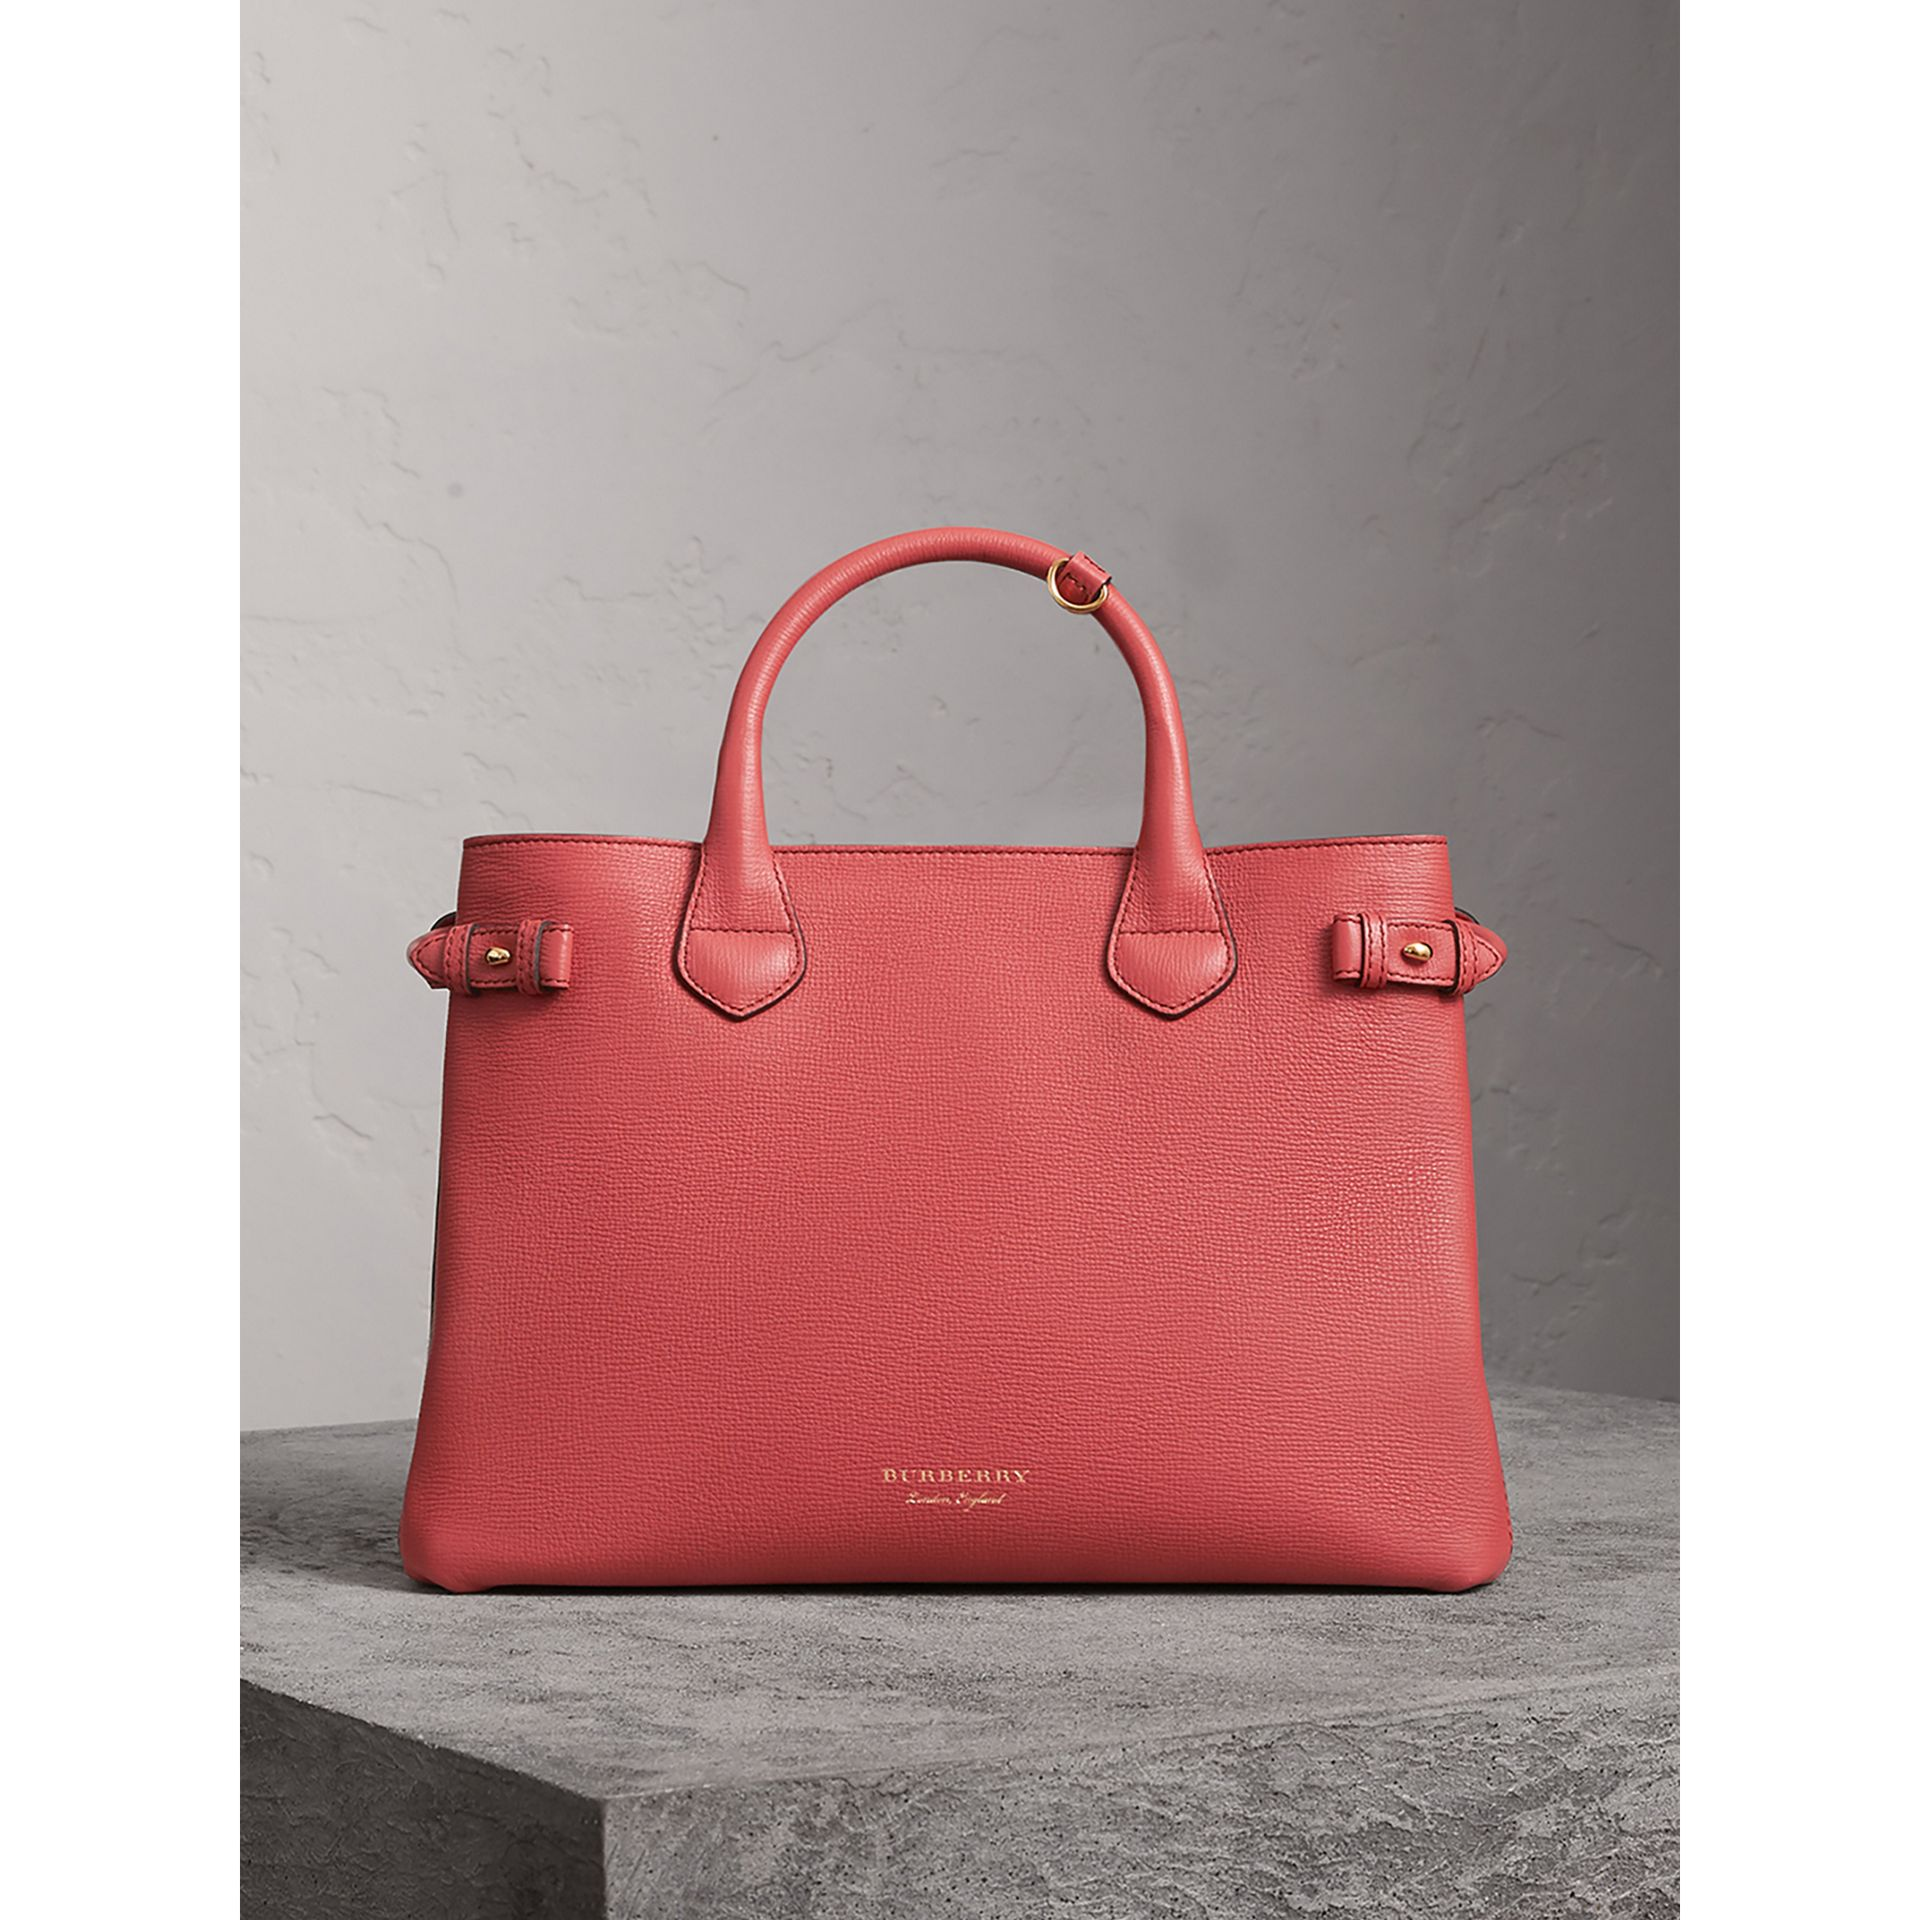 Sac The Banner moyen en cuir et coton House check (Cannelle Rouge) - Femme | Burberry - photo de la galerie 7